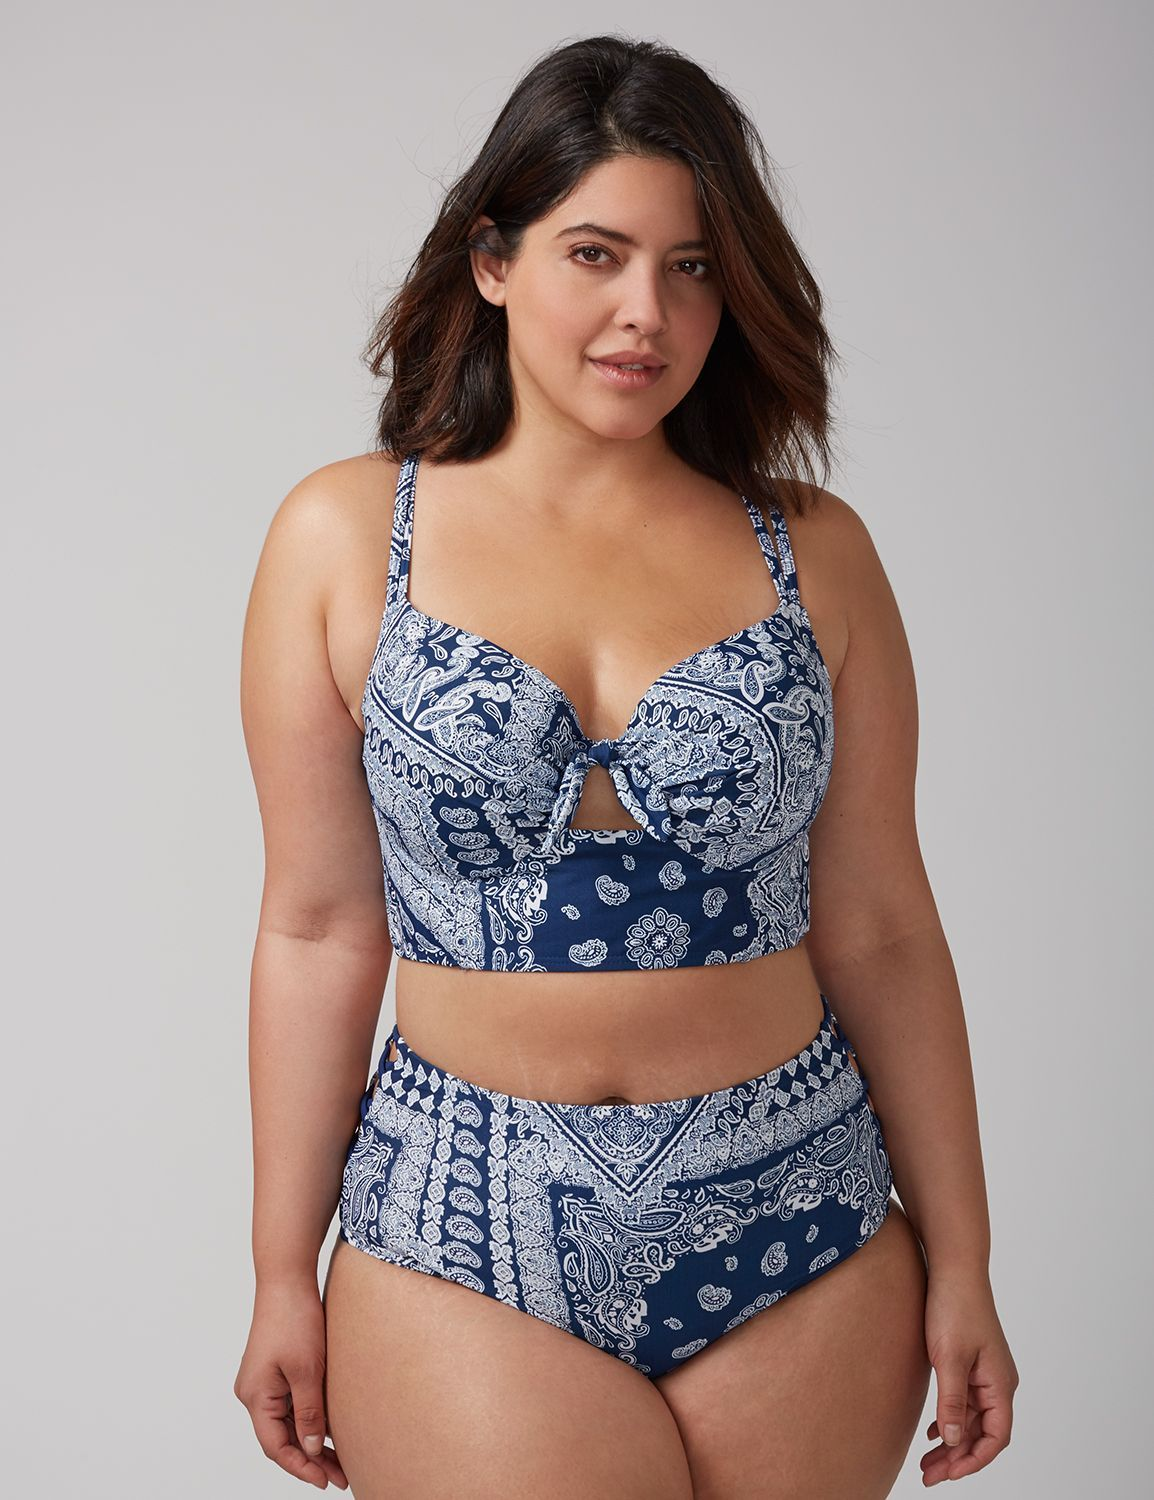 c31640a6905 Plus Size Bikini Swimsuit. Longline Bikini Top with Built-In Balconette Bra